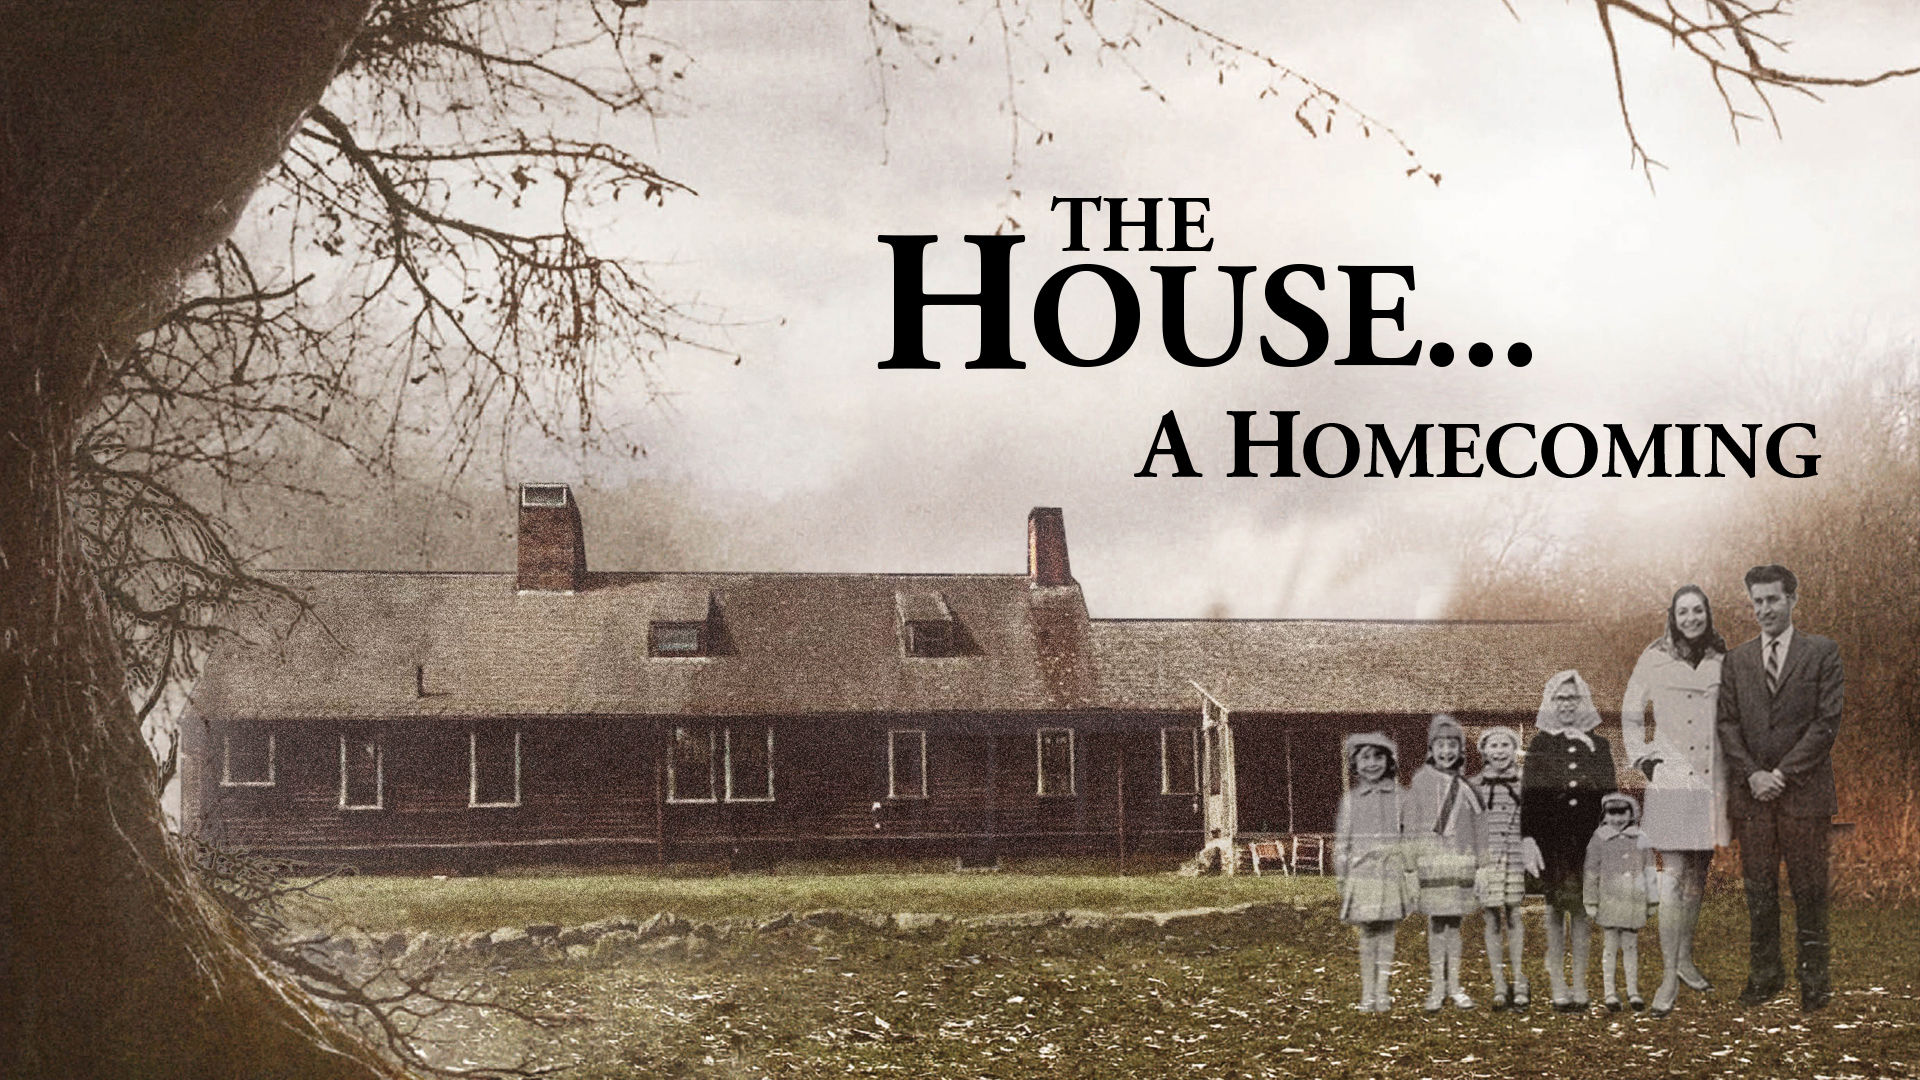 The Conjuring House: A Homecoming